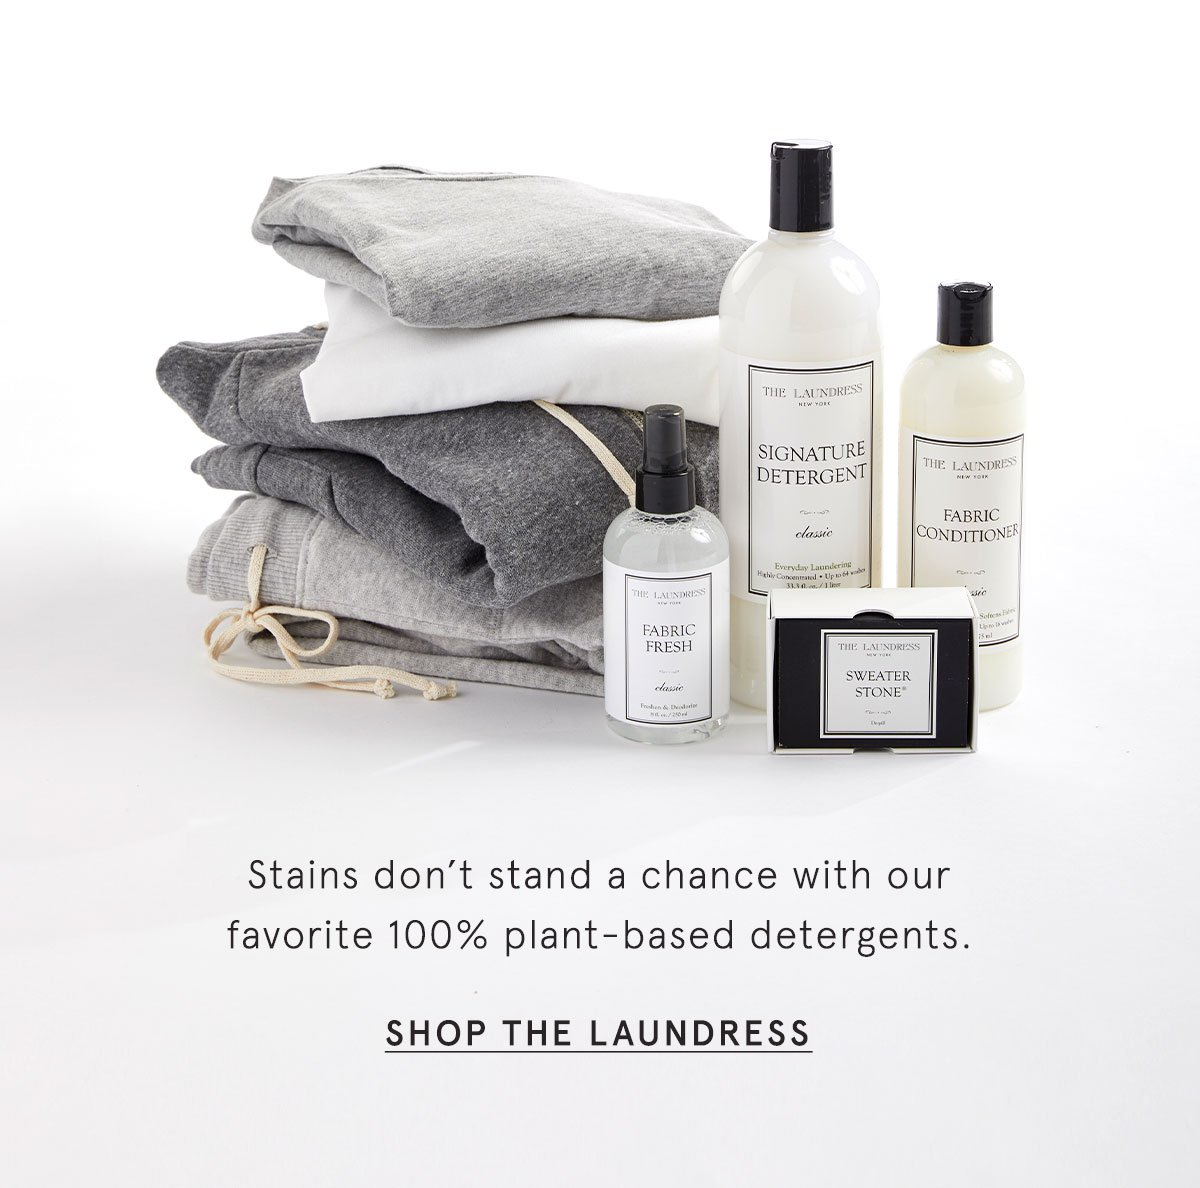 Stains don't stand a chance with our favorite 100% plant-based detergents. SHOP THE LAUNDRESS